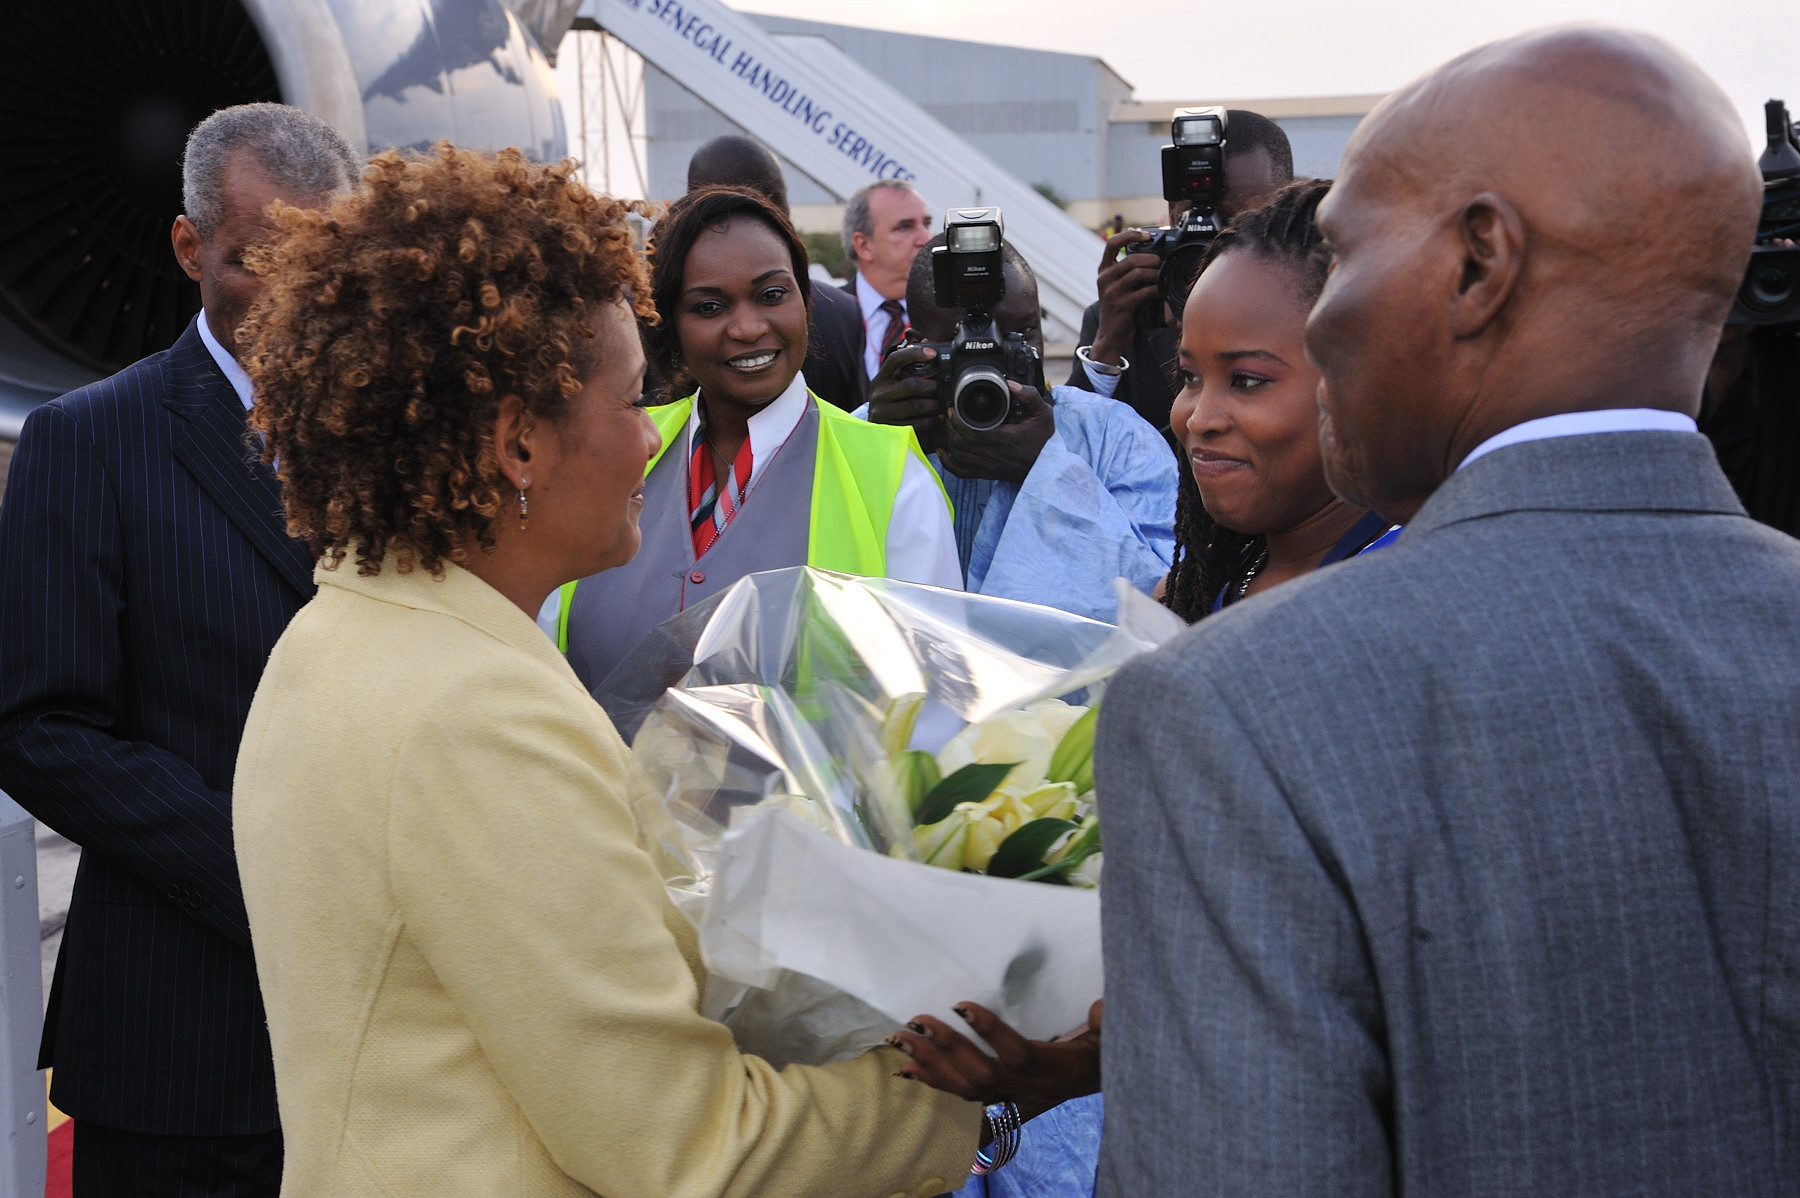 """Returning to this continent is a new opportunity to bear witness to an Africa that is full of excitement and promise, an Africa called to take its rightful place in the world,"" said the Right Honourable Michaëlle Jean. ""I wanted to visit central Africa to encourage the efforts to bring peace to the region, to rebuild and to restore the ties of trust and the rule of law."""